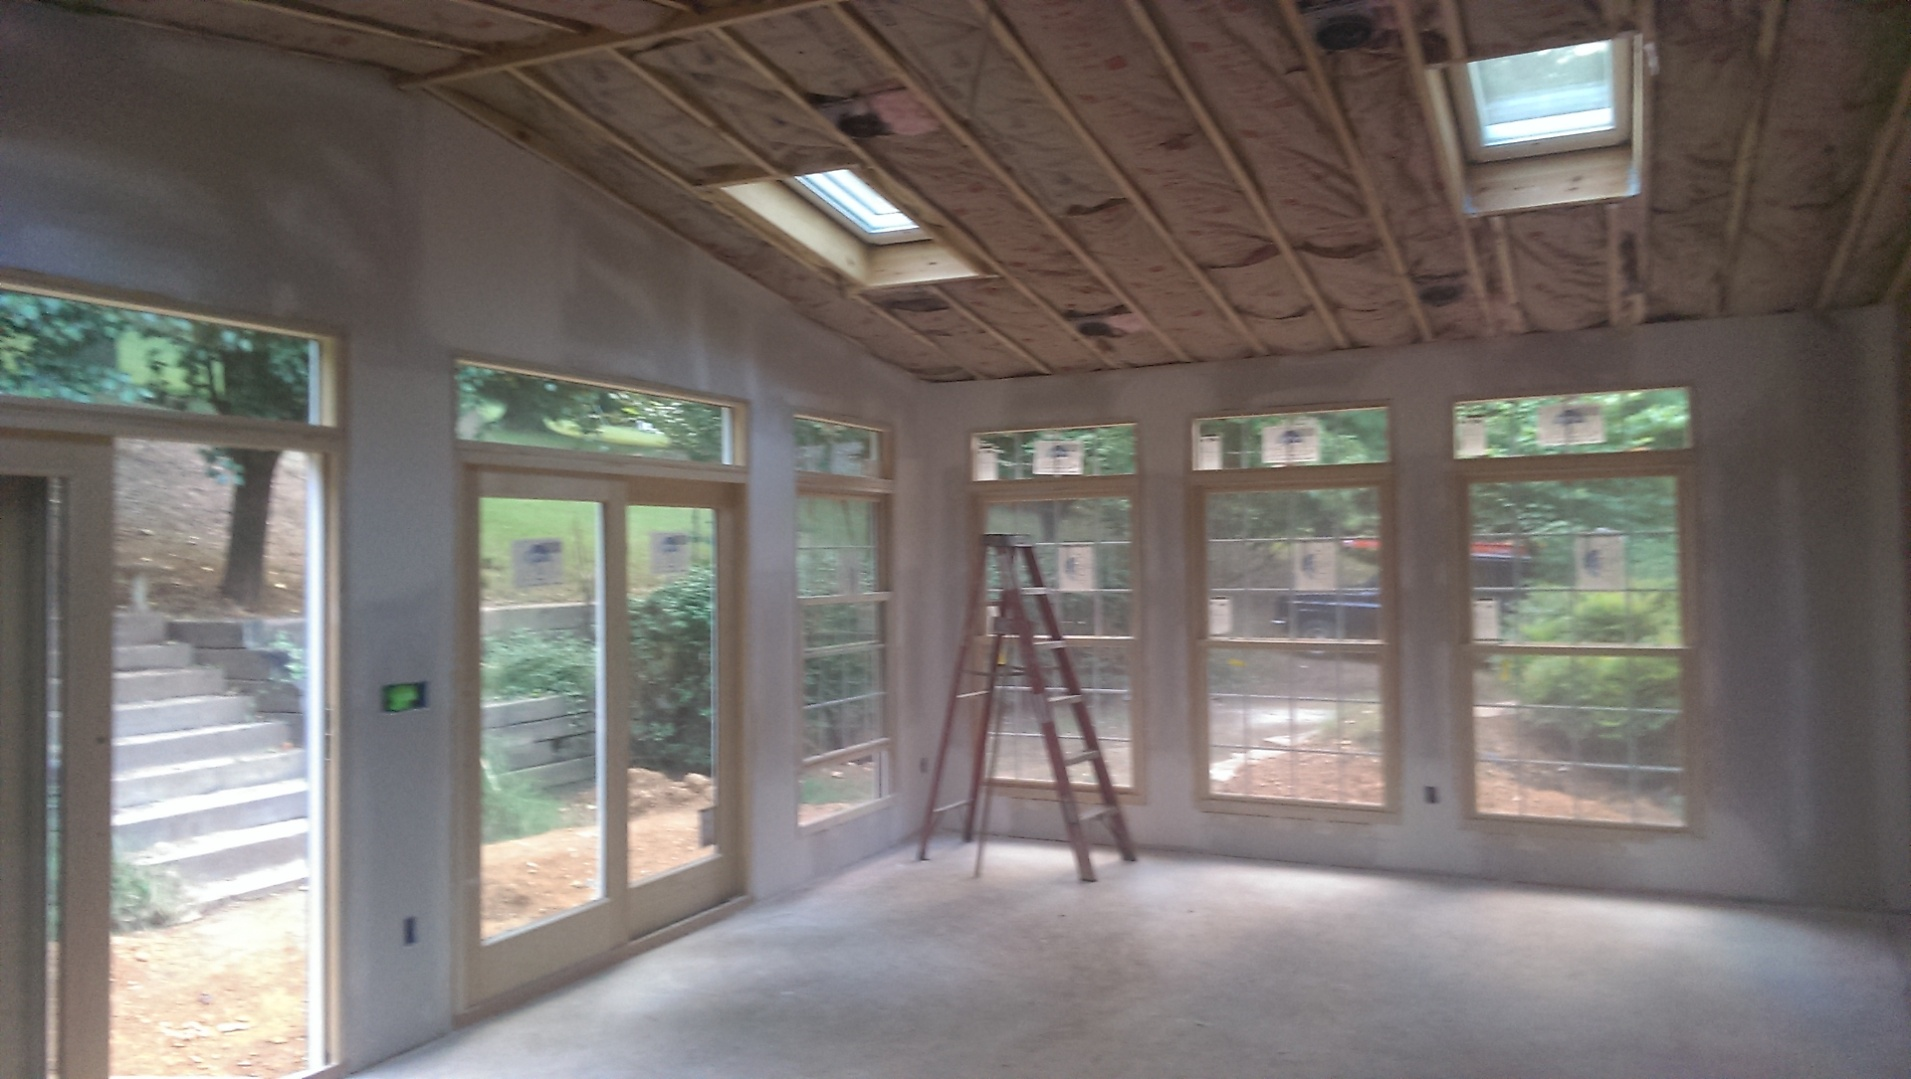 How To Install Polystyrene Sheet Insulation Sunroom